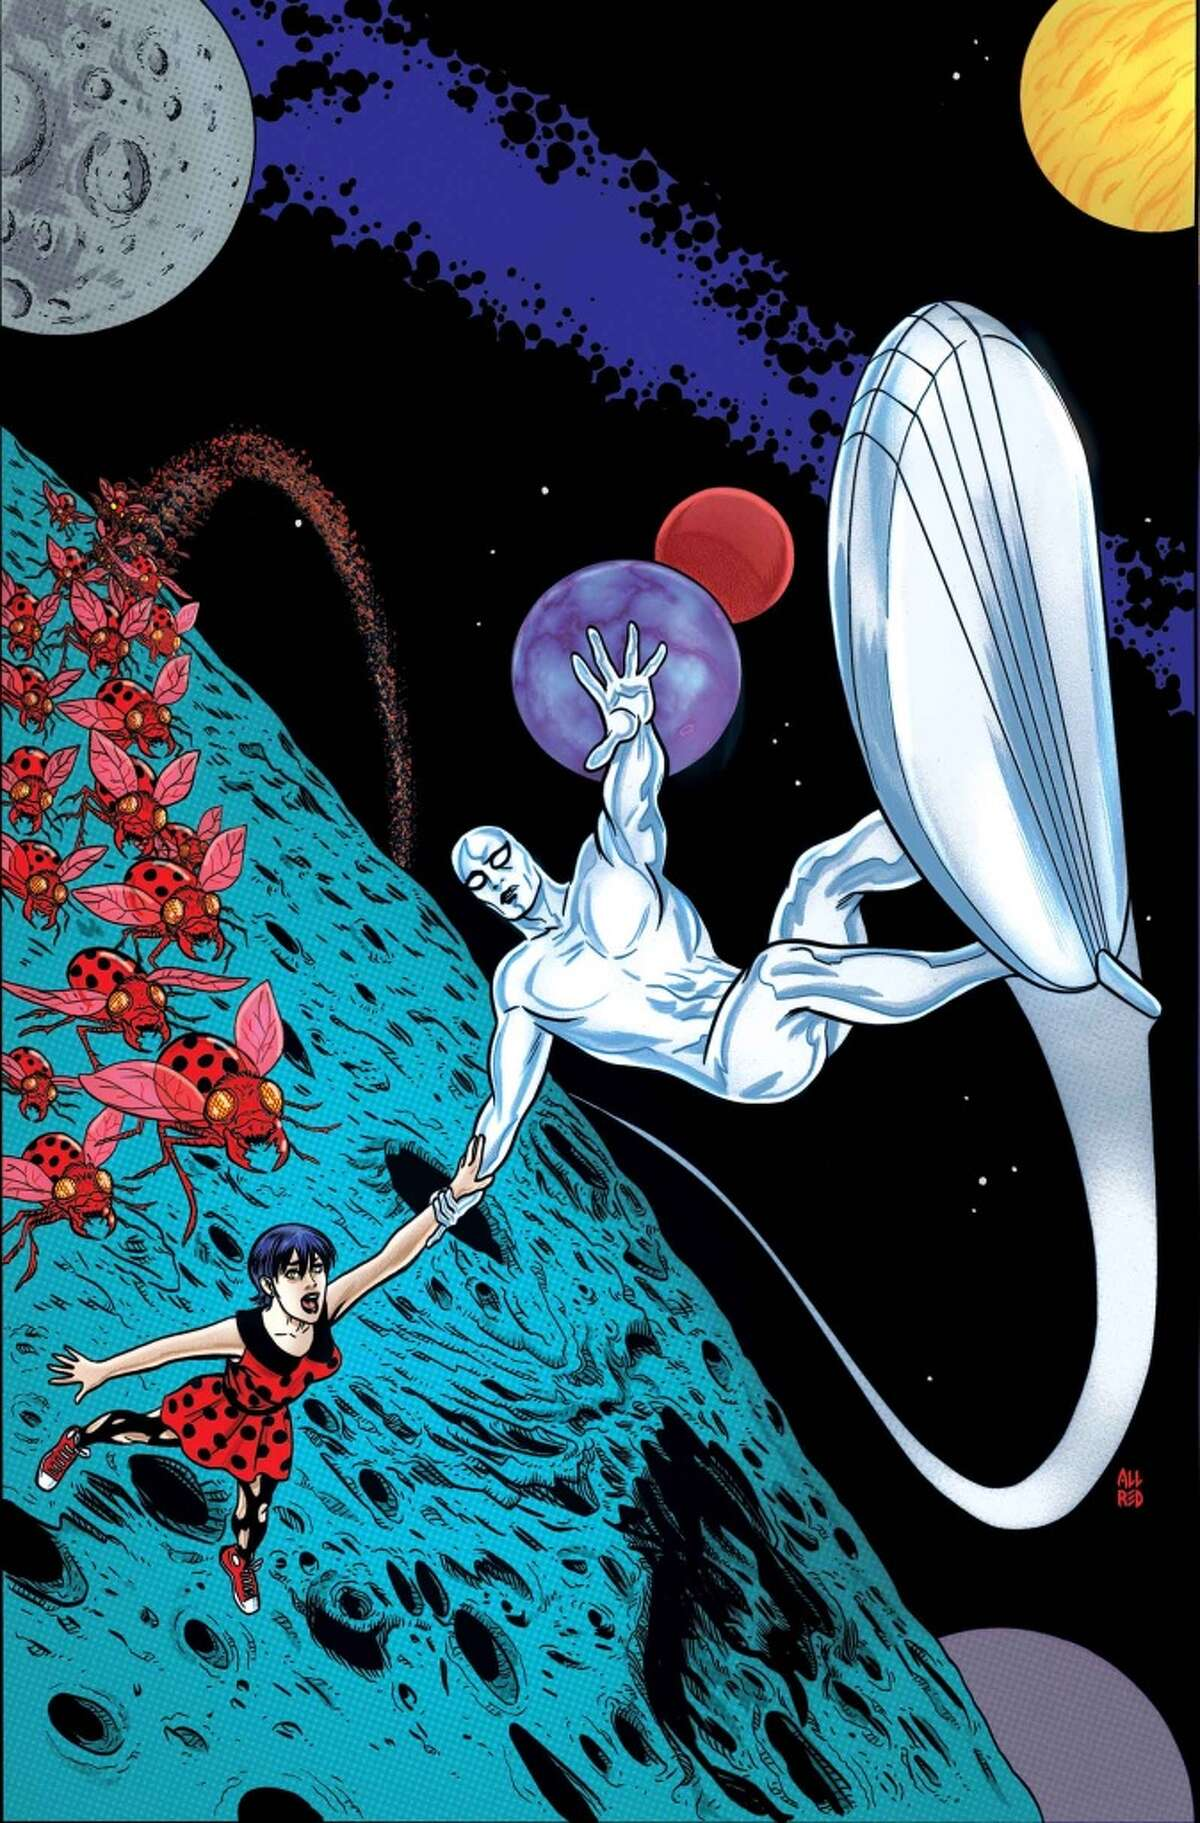 Silver Surfer 1966: The Fantastic Four 48 Created by Stan Lee and Jack Kirby